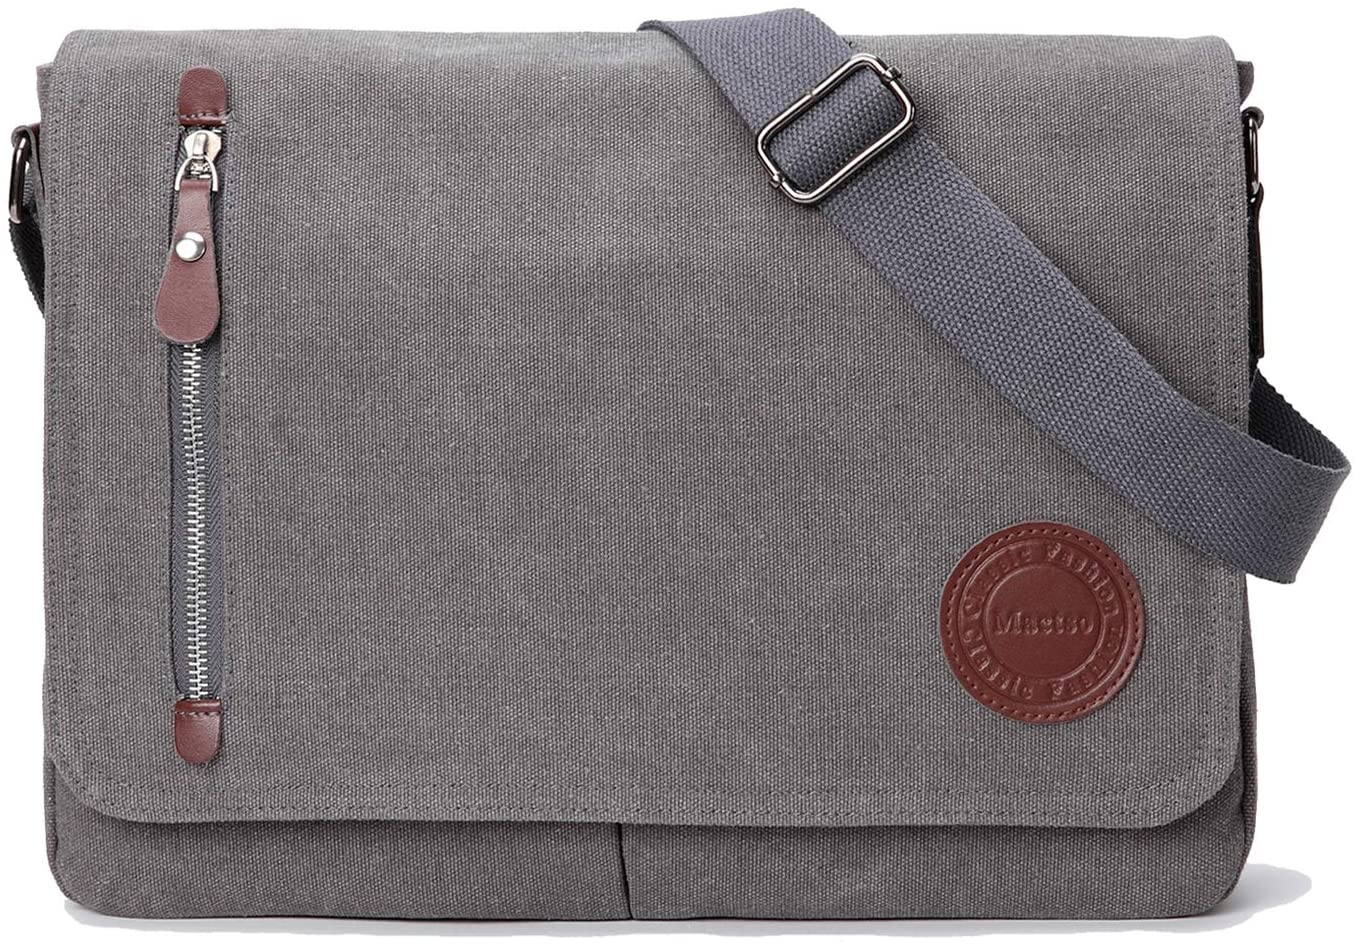 "Vintage Canvas Satchel Messenger Bag for Men Women,Travel Shoulder bag 13.5"" Laptop Bags Bookbag (Grey)"